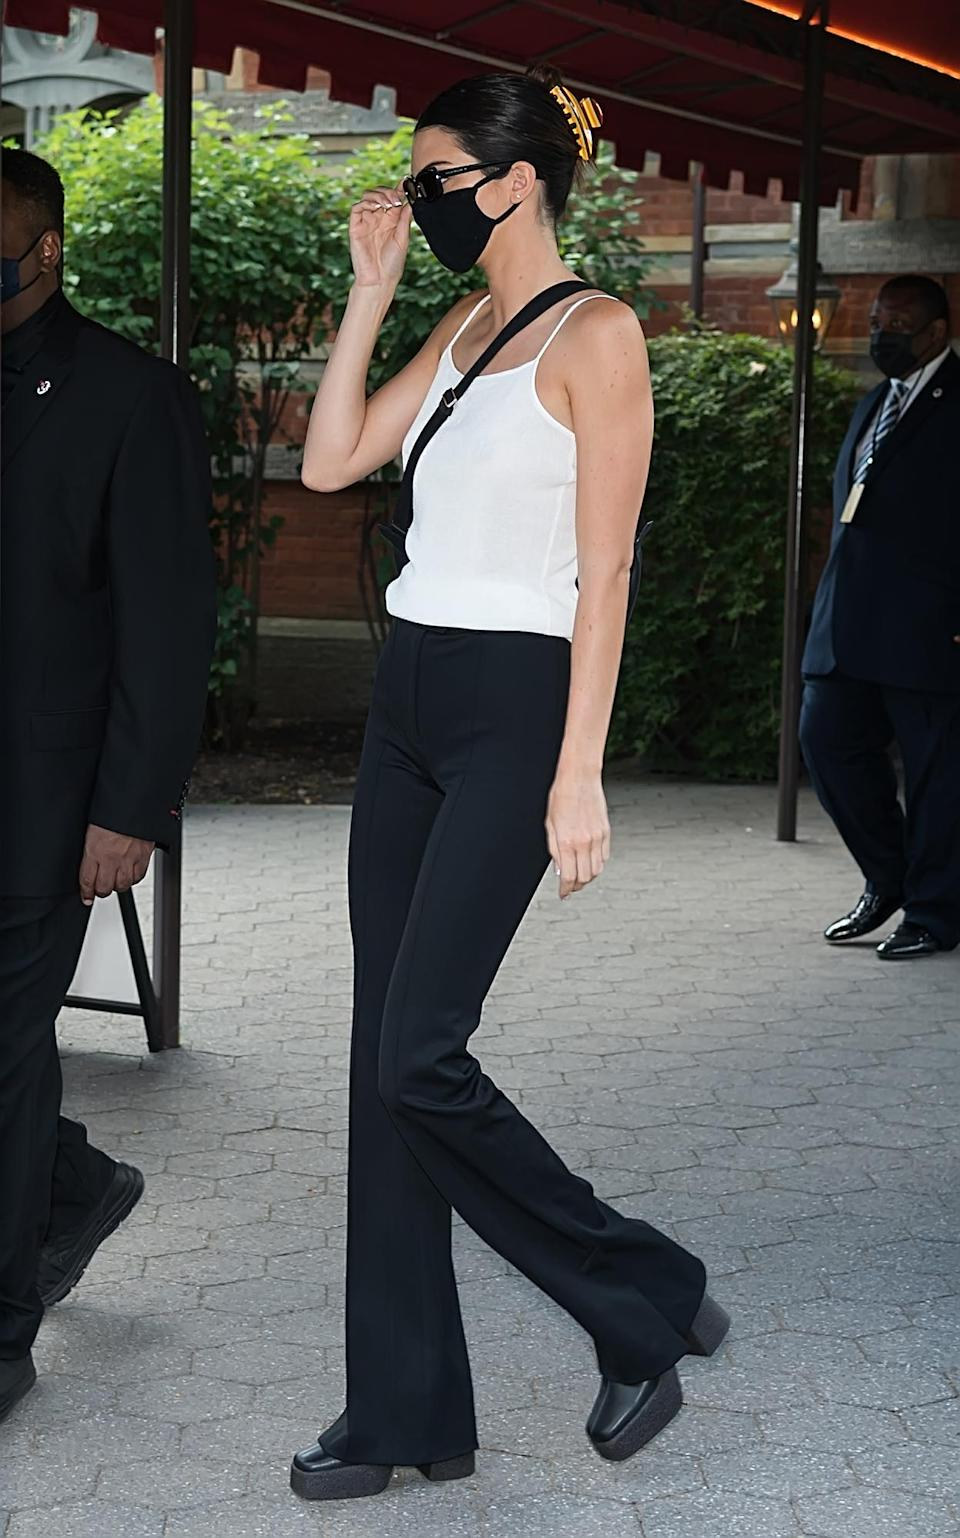 Kendall Jenner is seen in a casual outfit during New York Fashion Week.  - Credit: Ouzounova / SplashNews.com